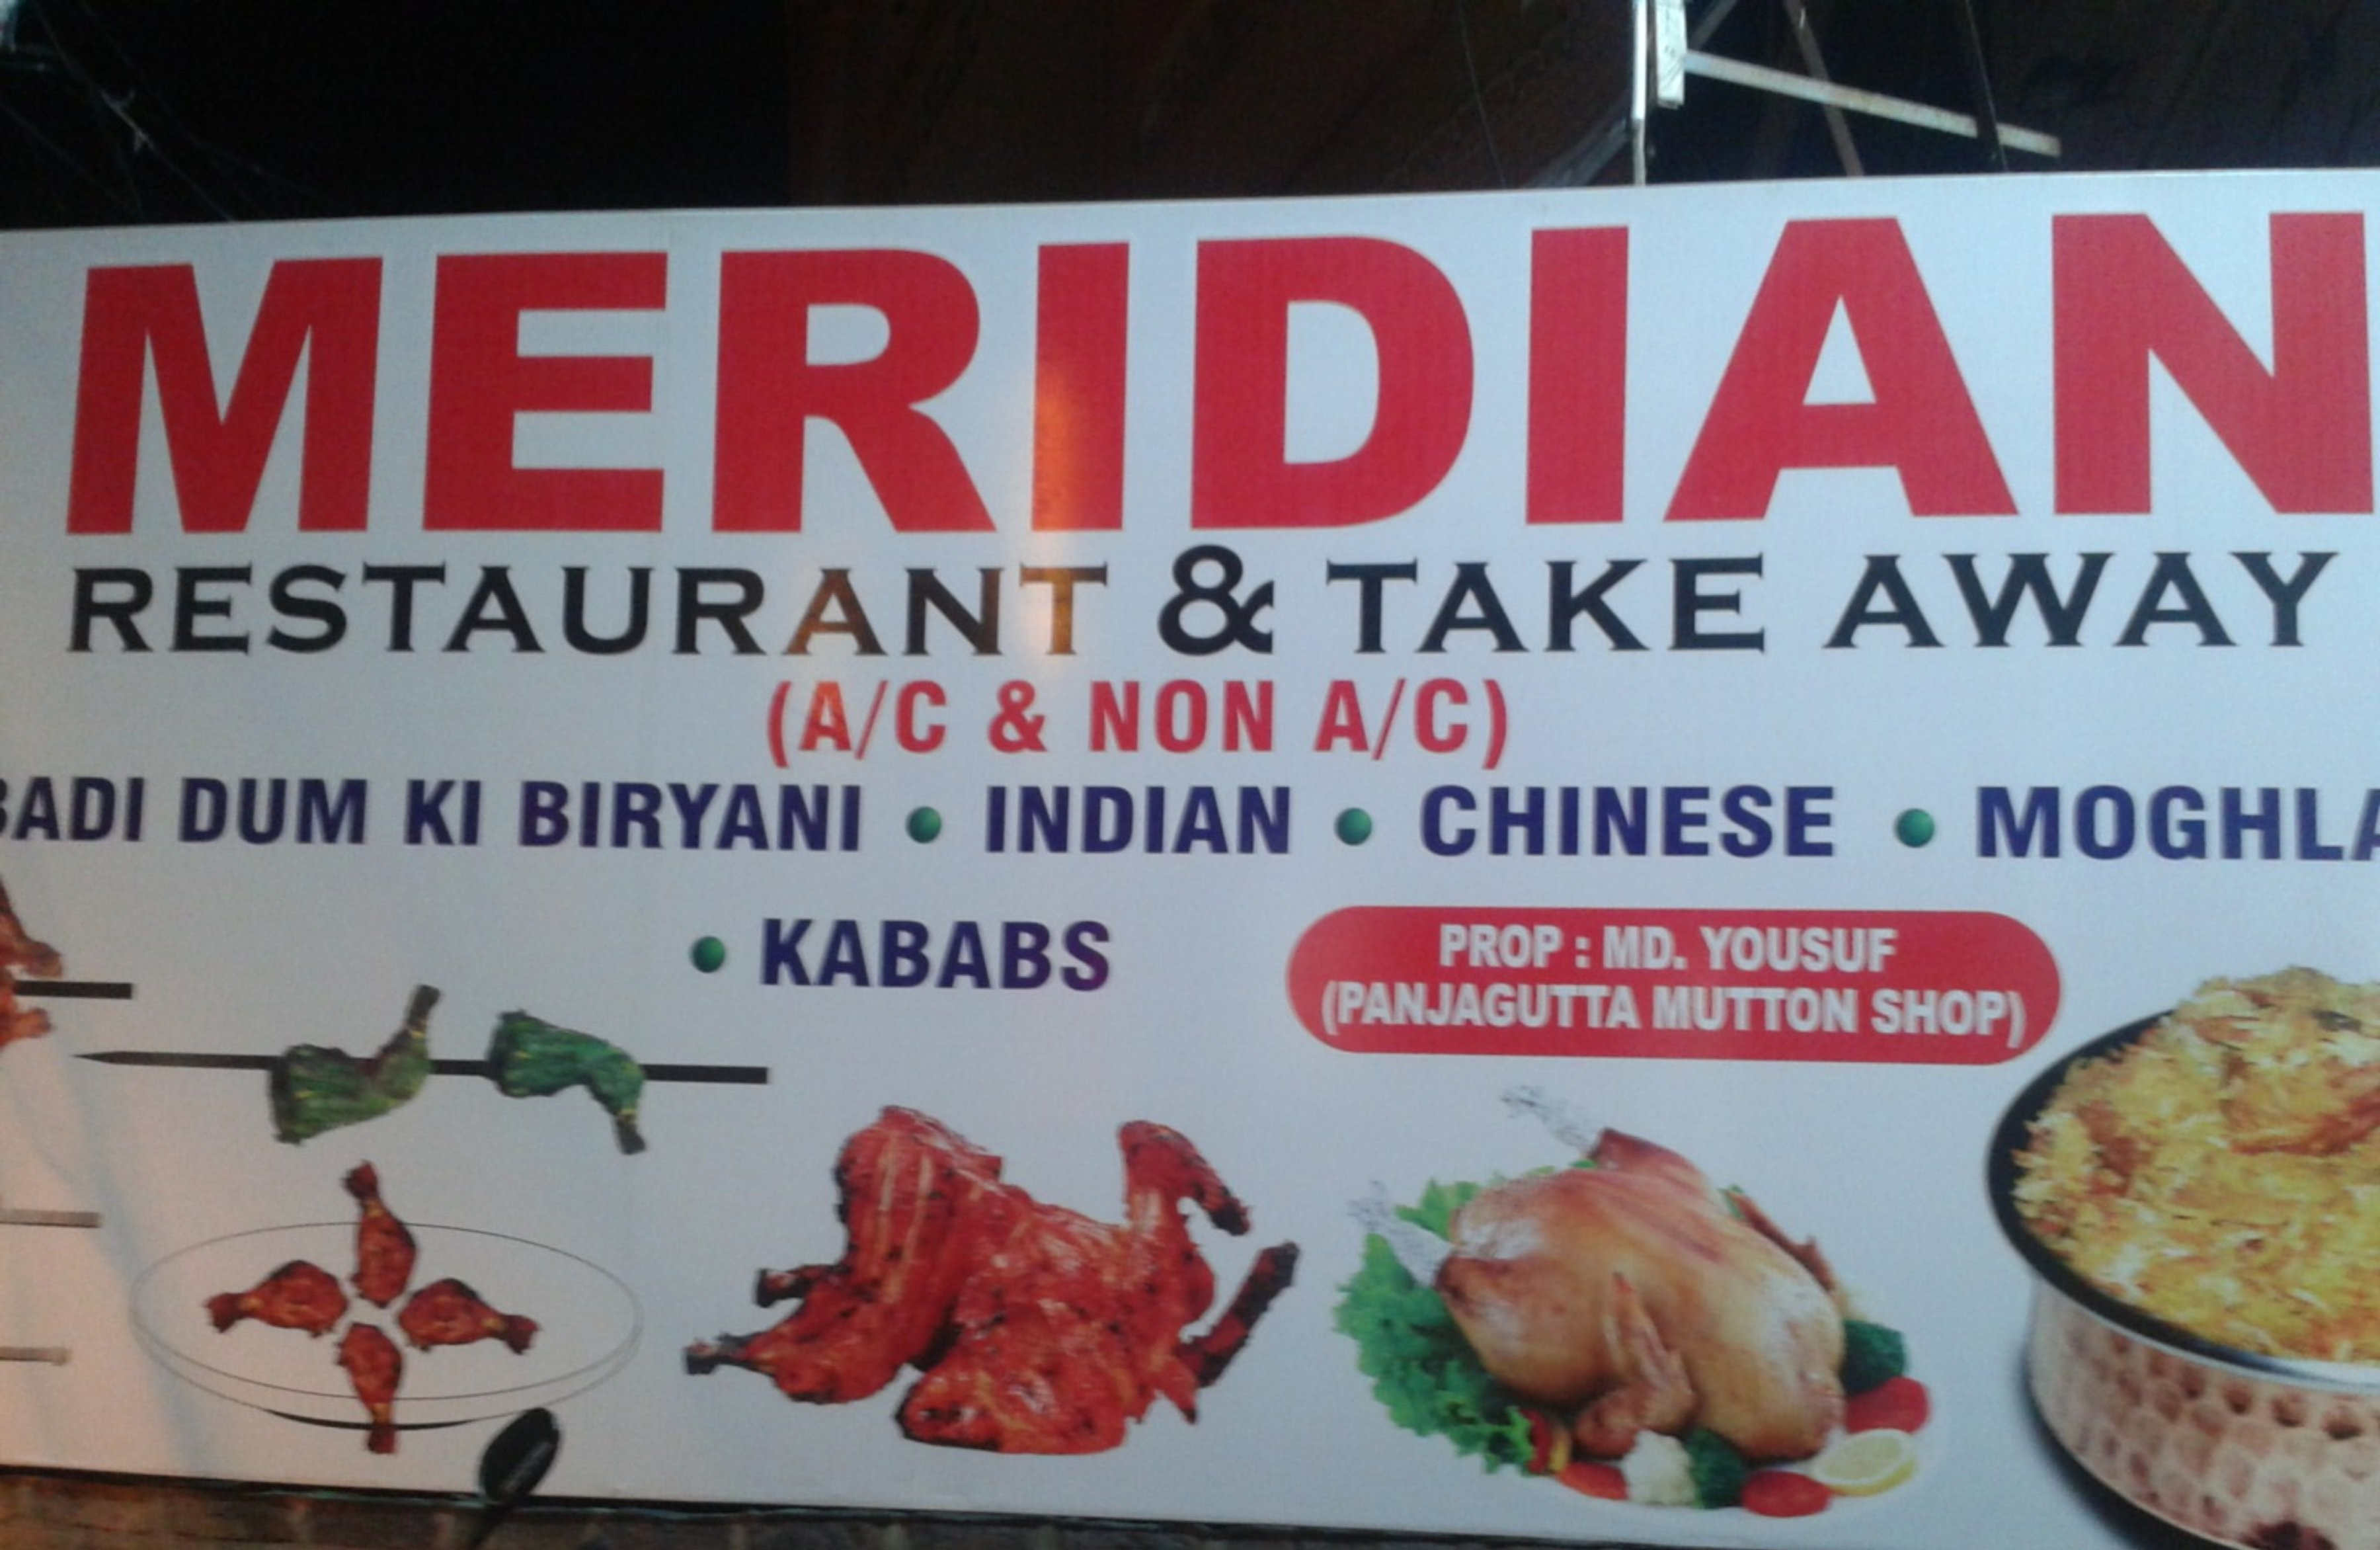 Meridian Cafe And Restaurant - Panjagutta - Hyderabad Image